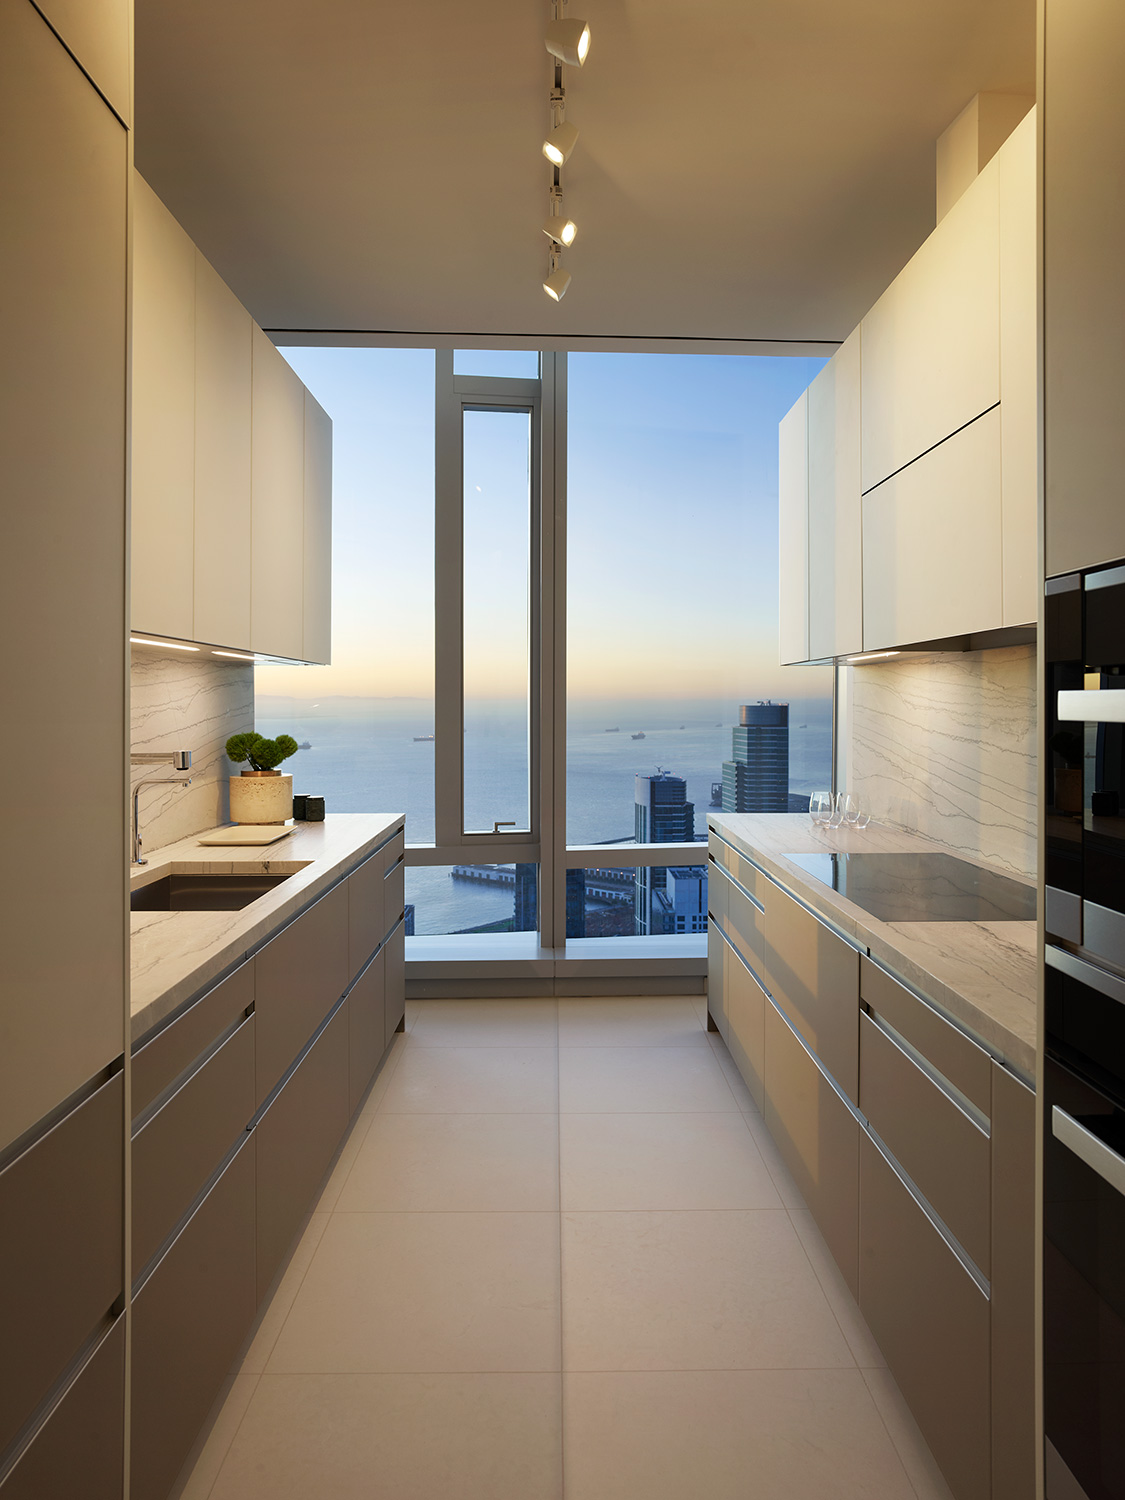 Grand Penthouse catering kitchen with view